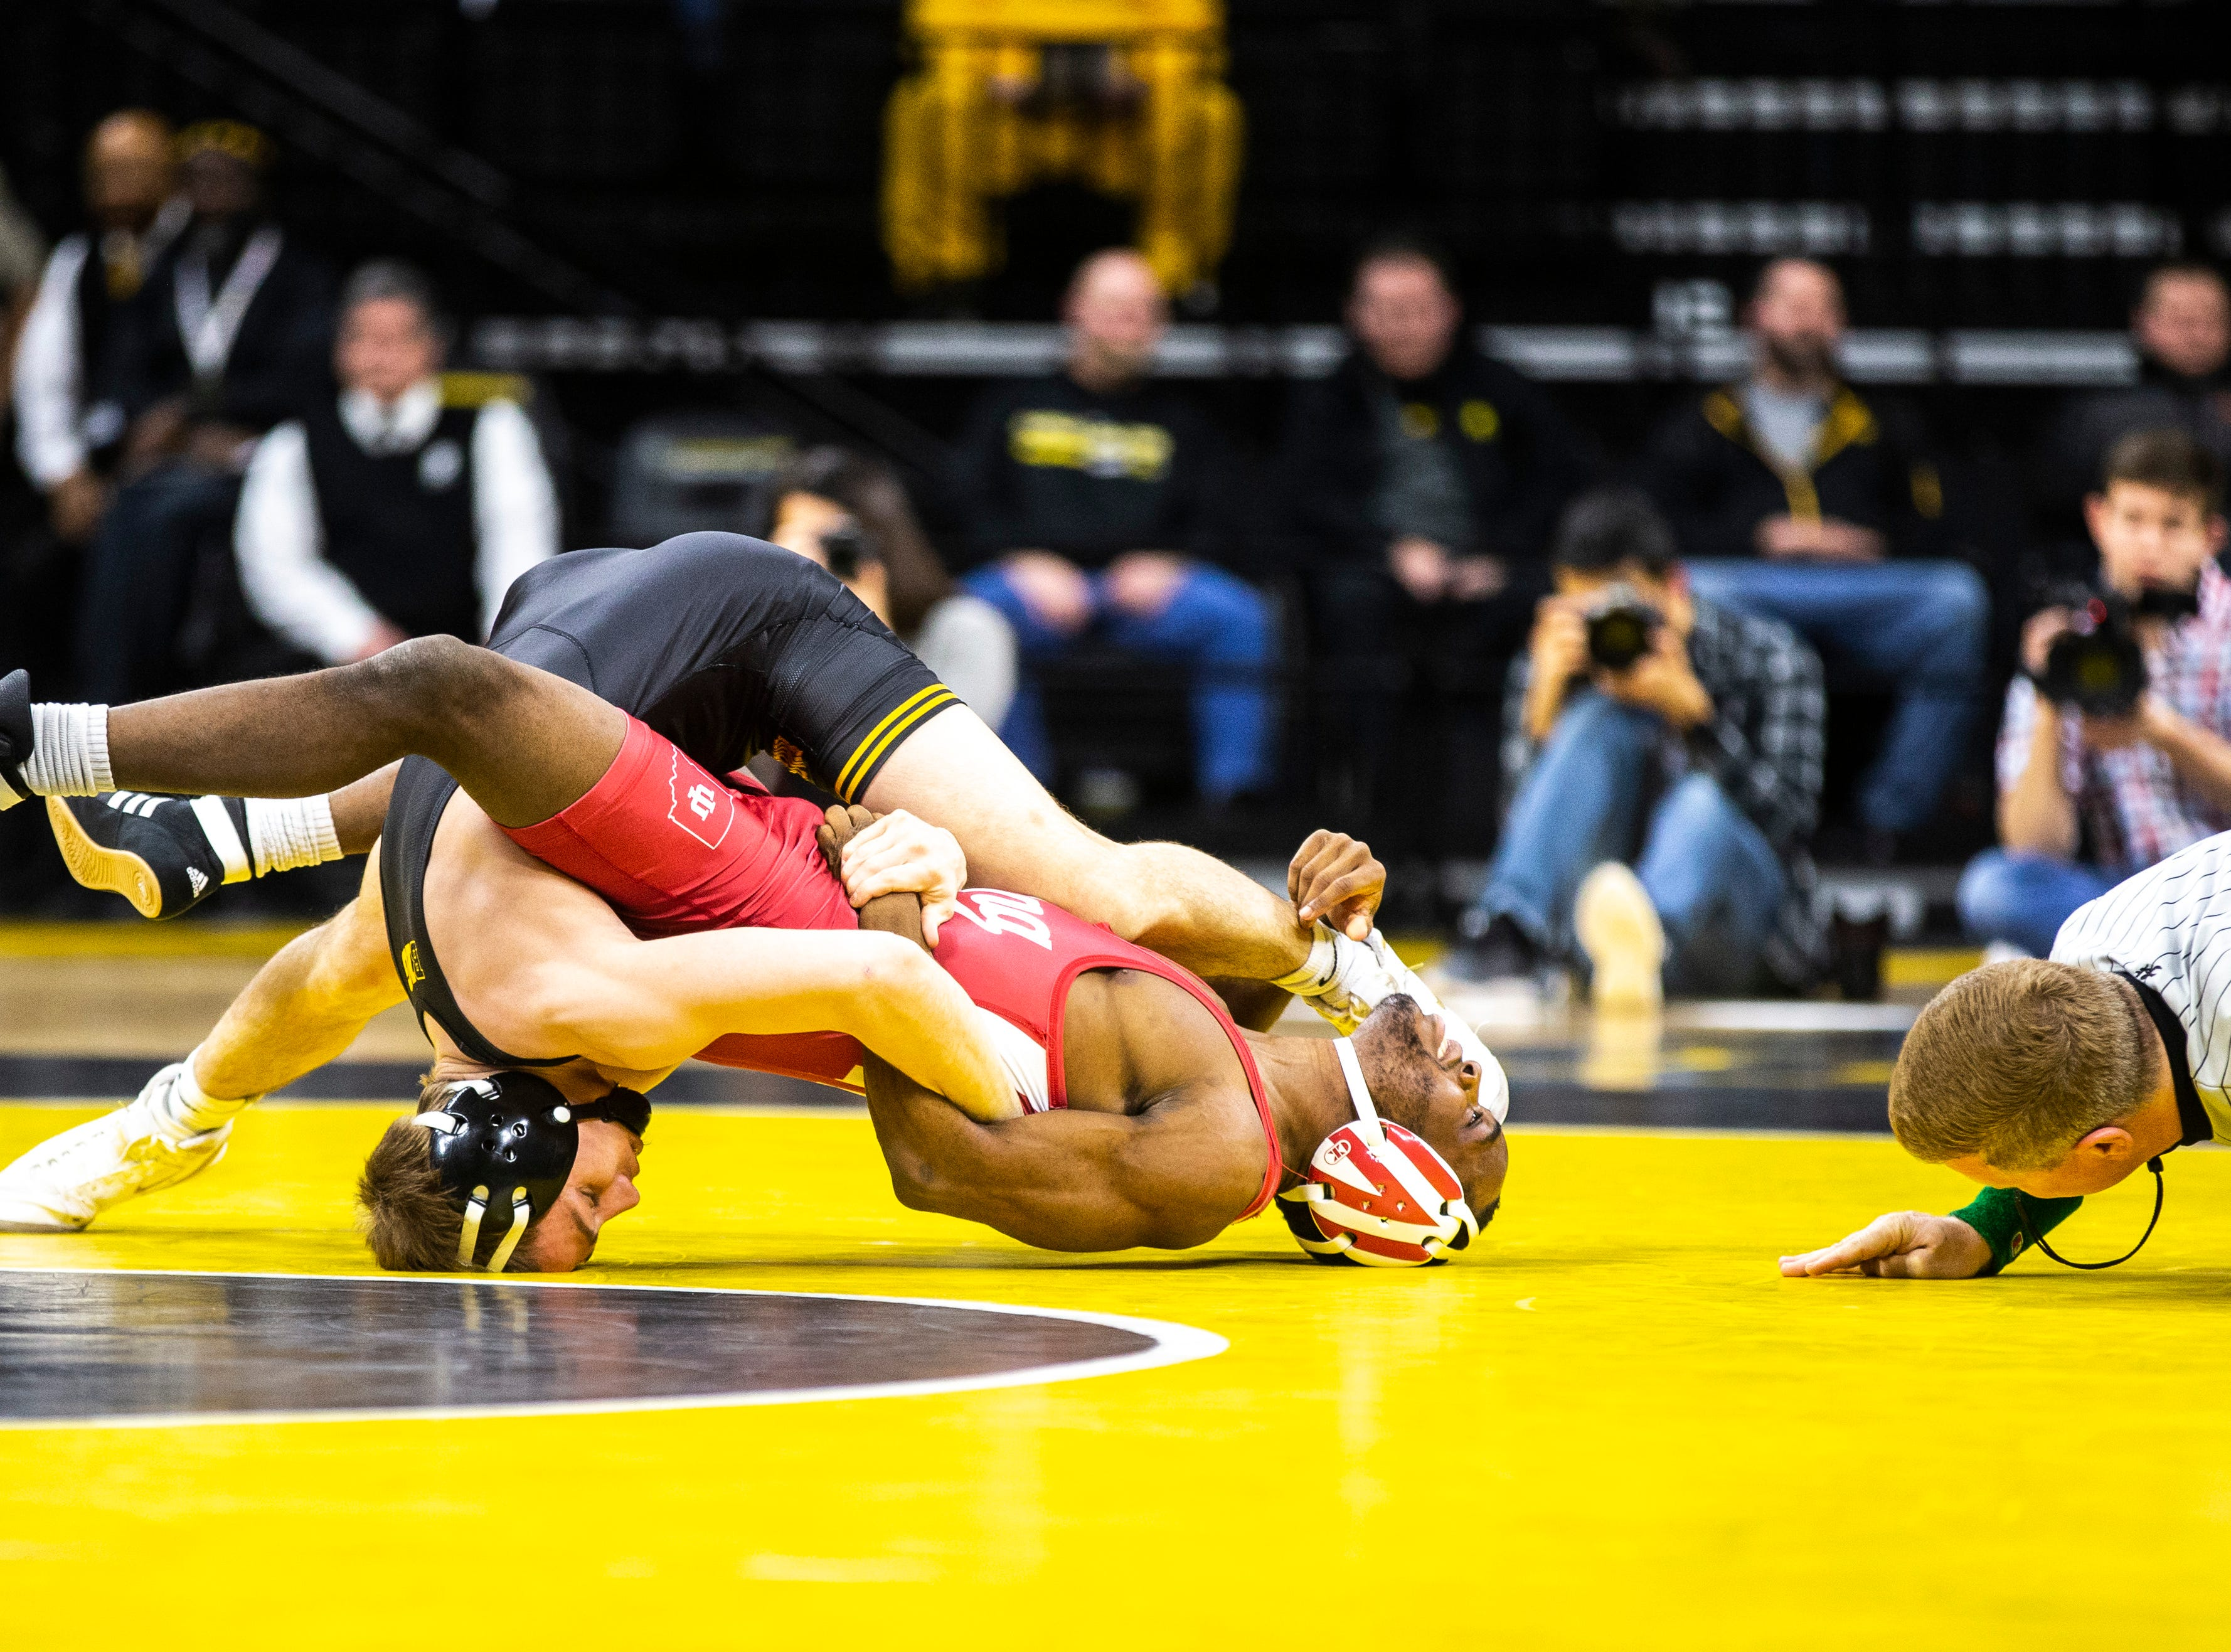 Iowa's Spencer Lee, left, gets a near fall while wrestling Indiana's Elijah Oliver at 125 during a NCAA Big Ten Conference wrestling dual on Friday, Feb. 15, 2019 at Carver-Hawkeye Arena in Iowa City, Iowa.